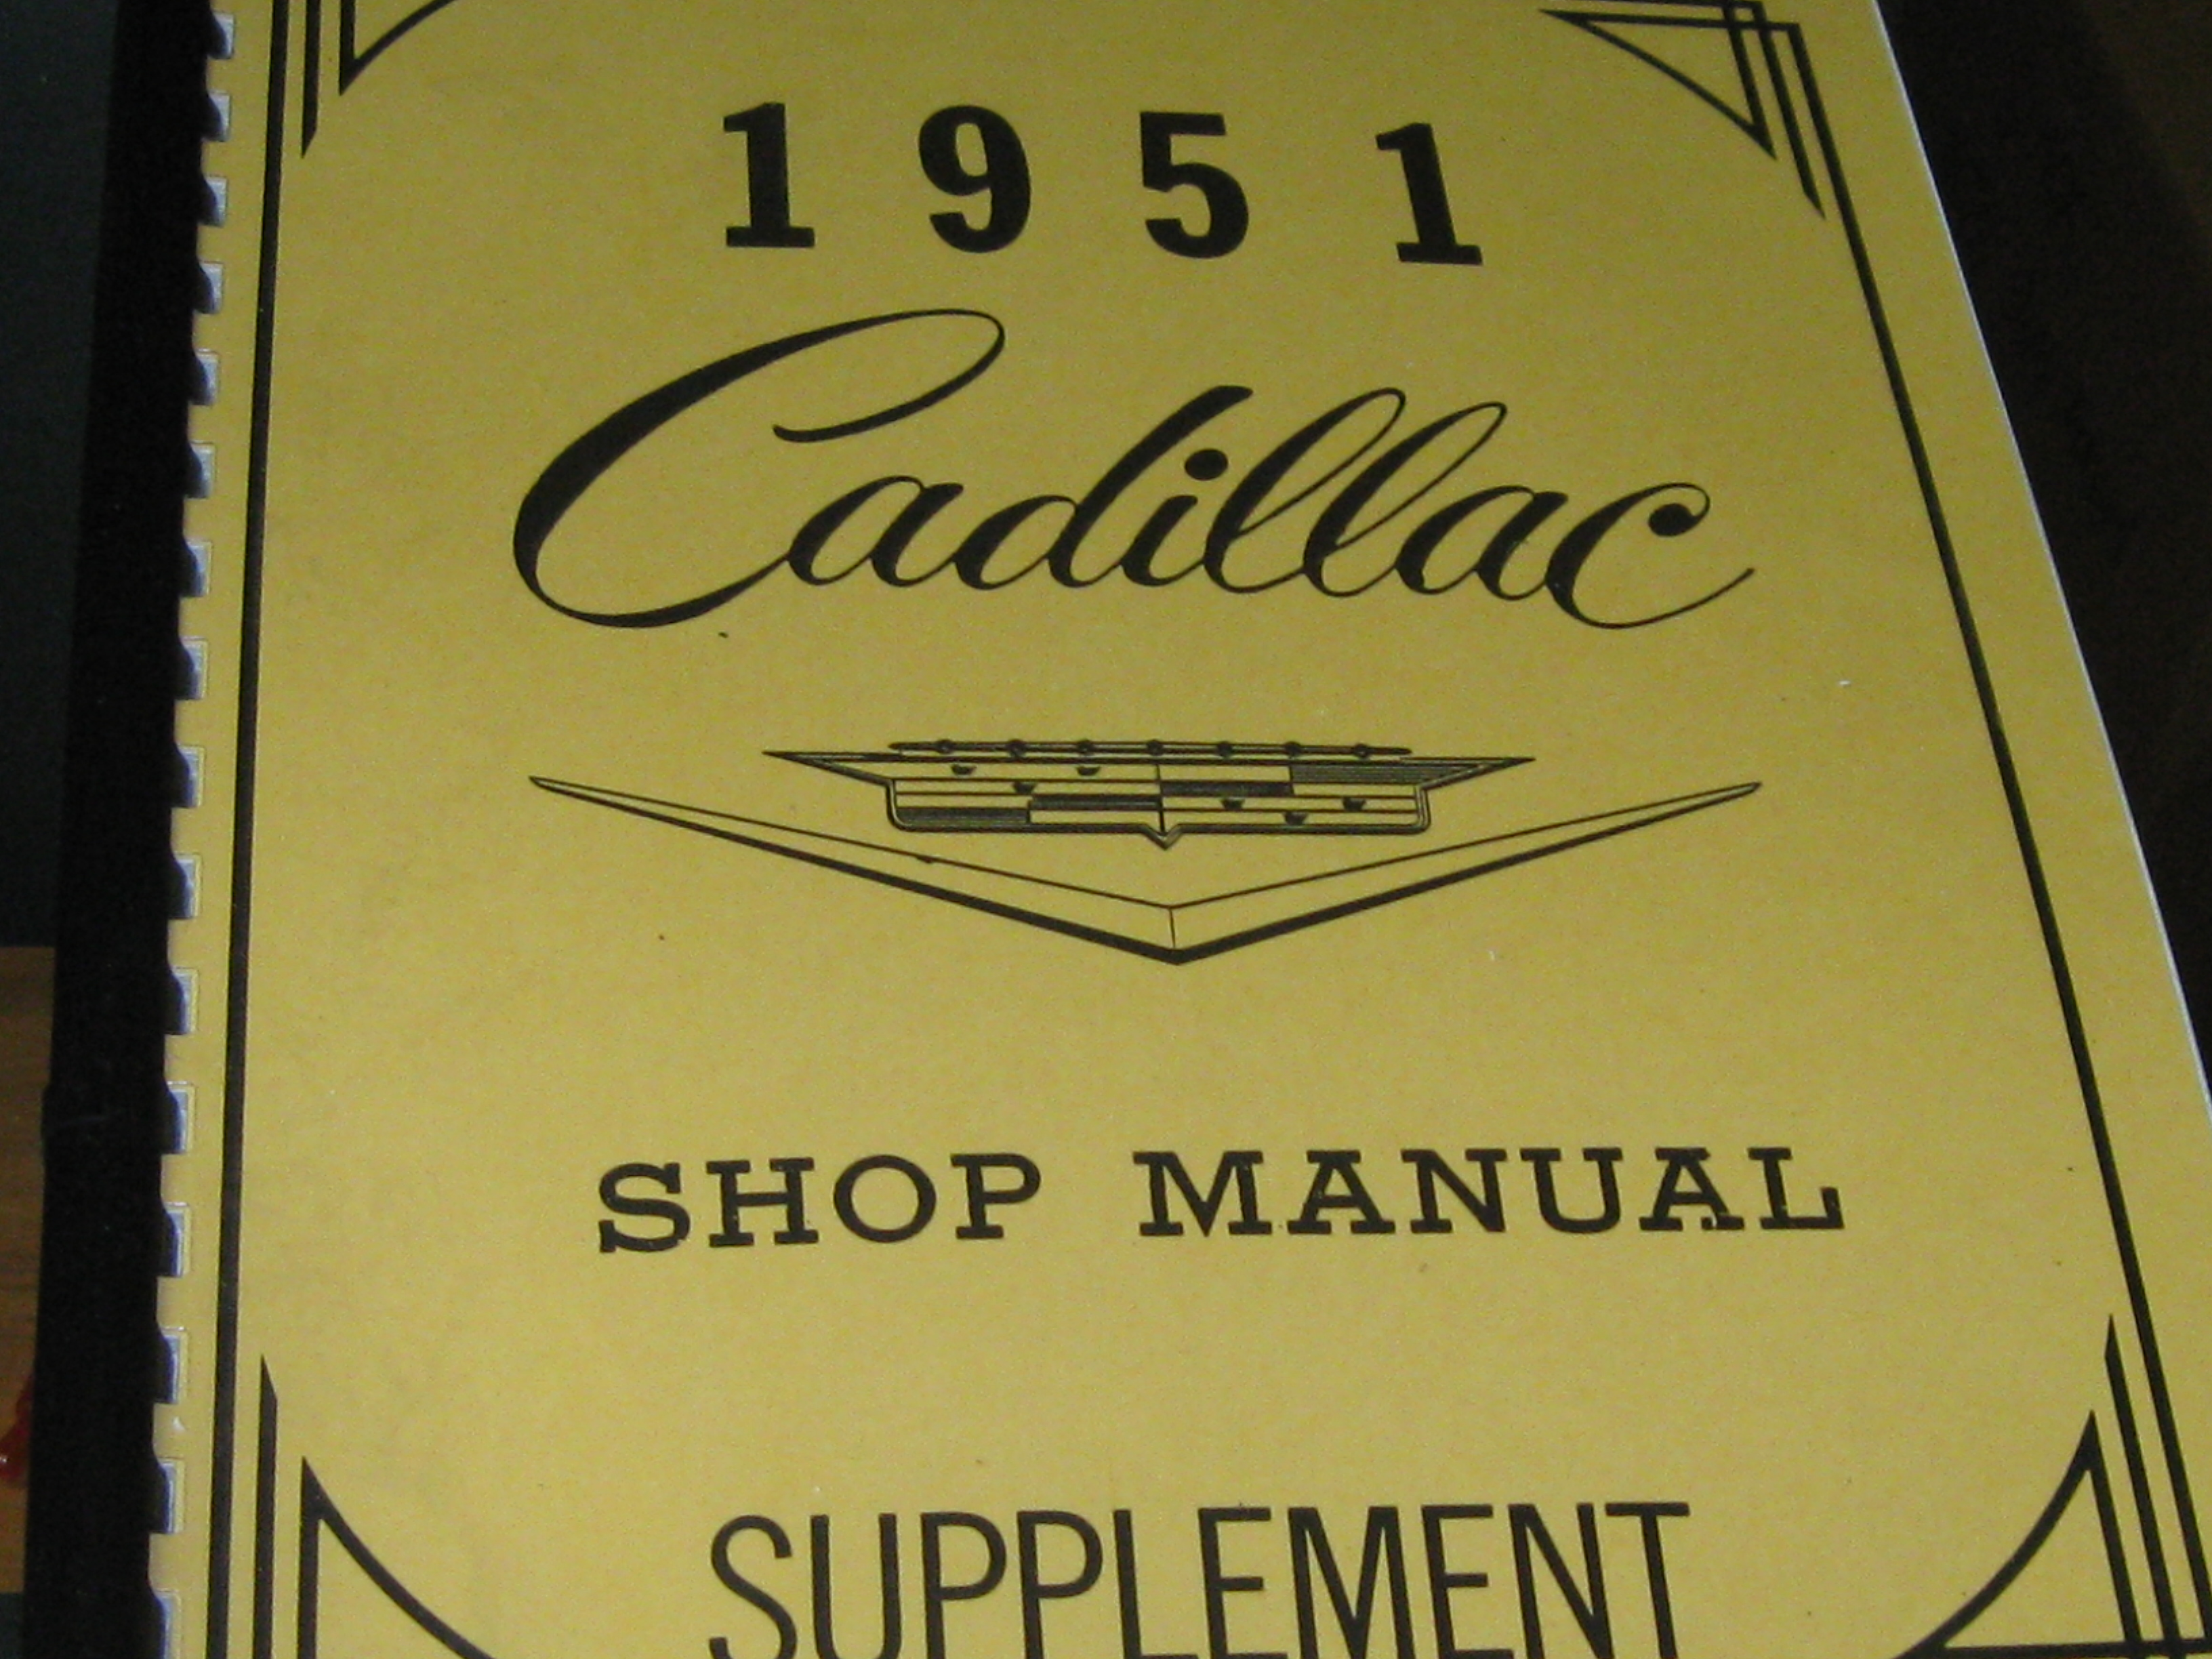 then and now automotive 1951 cadillac shop manual then 1954 cadillac shop manual cadillac shop manual 1961 page 15-110